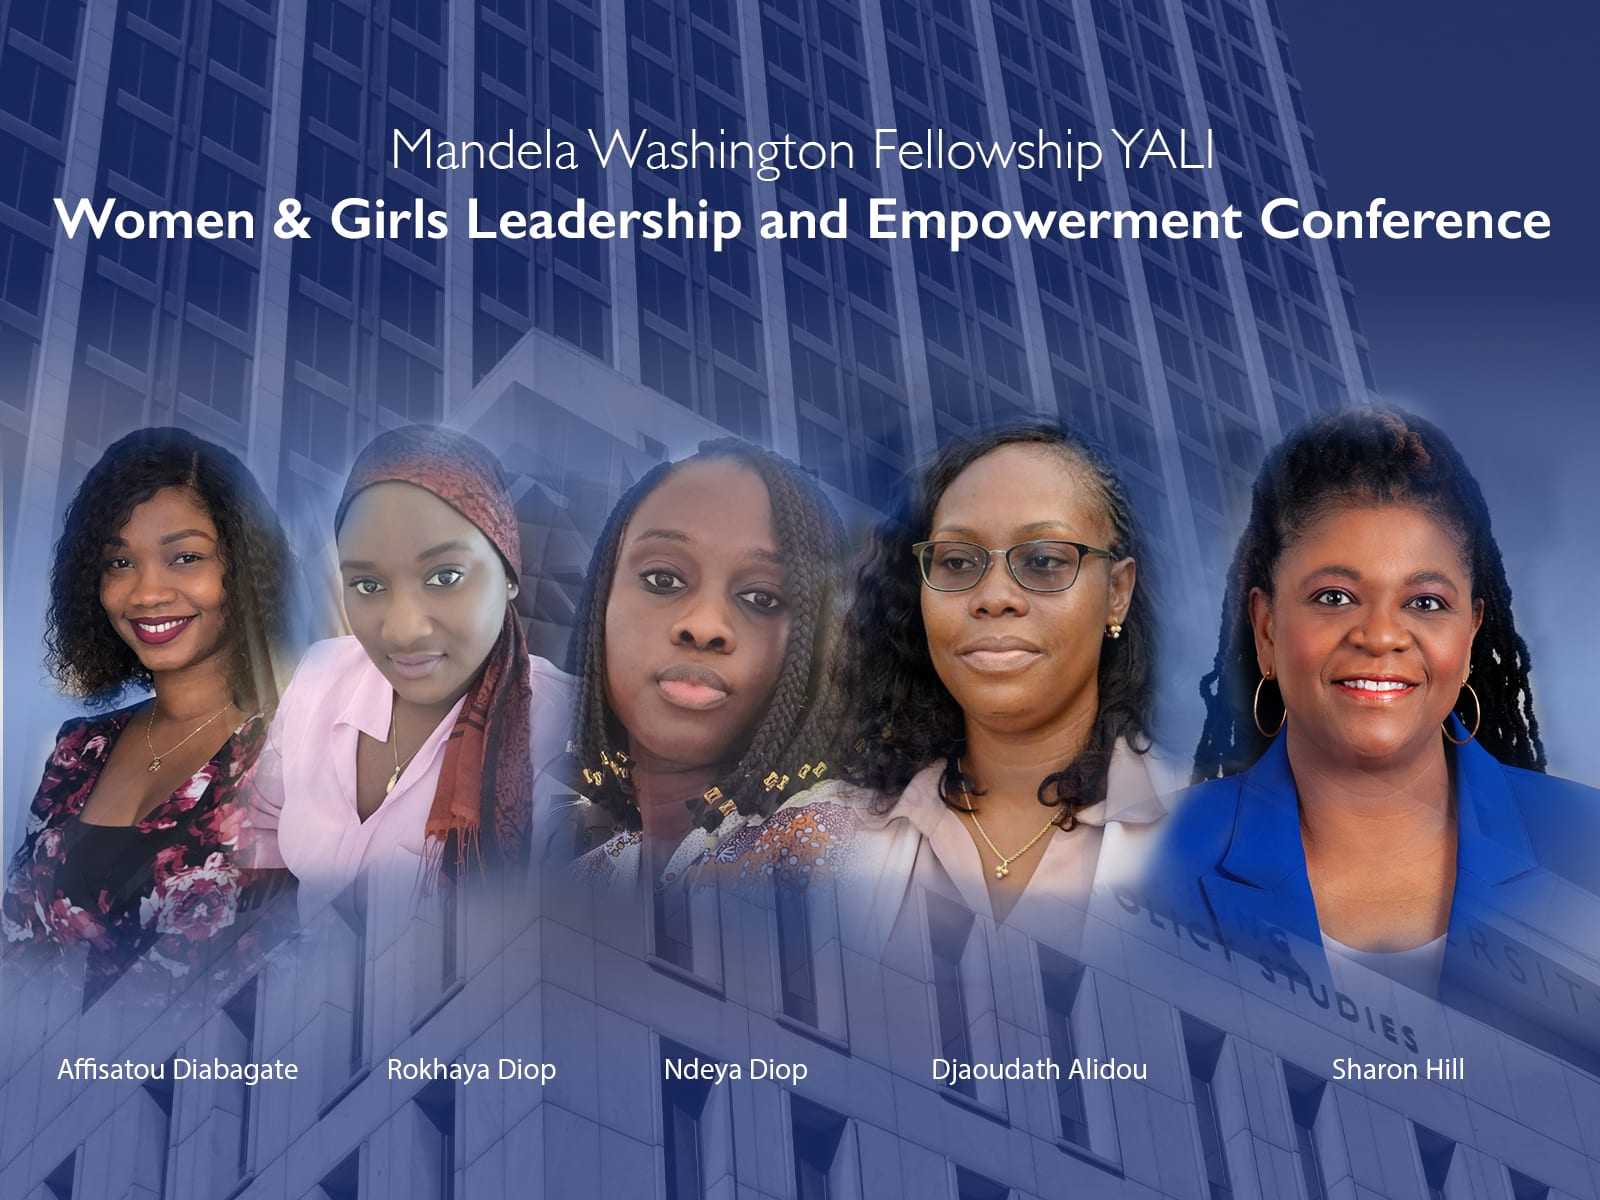 Women and Girls Leadership and Empowerment Conference